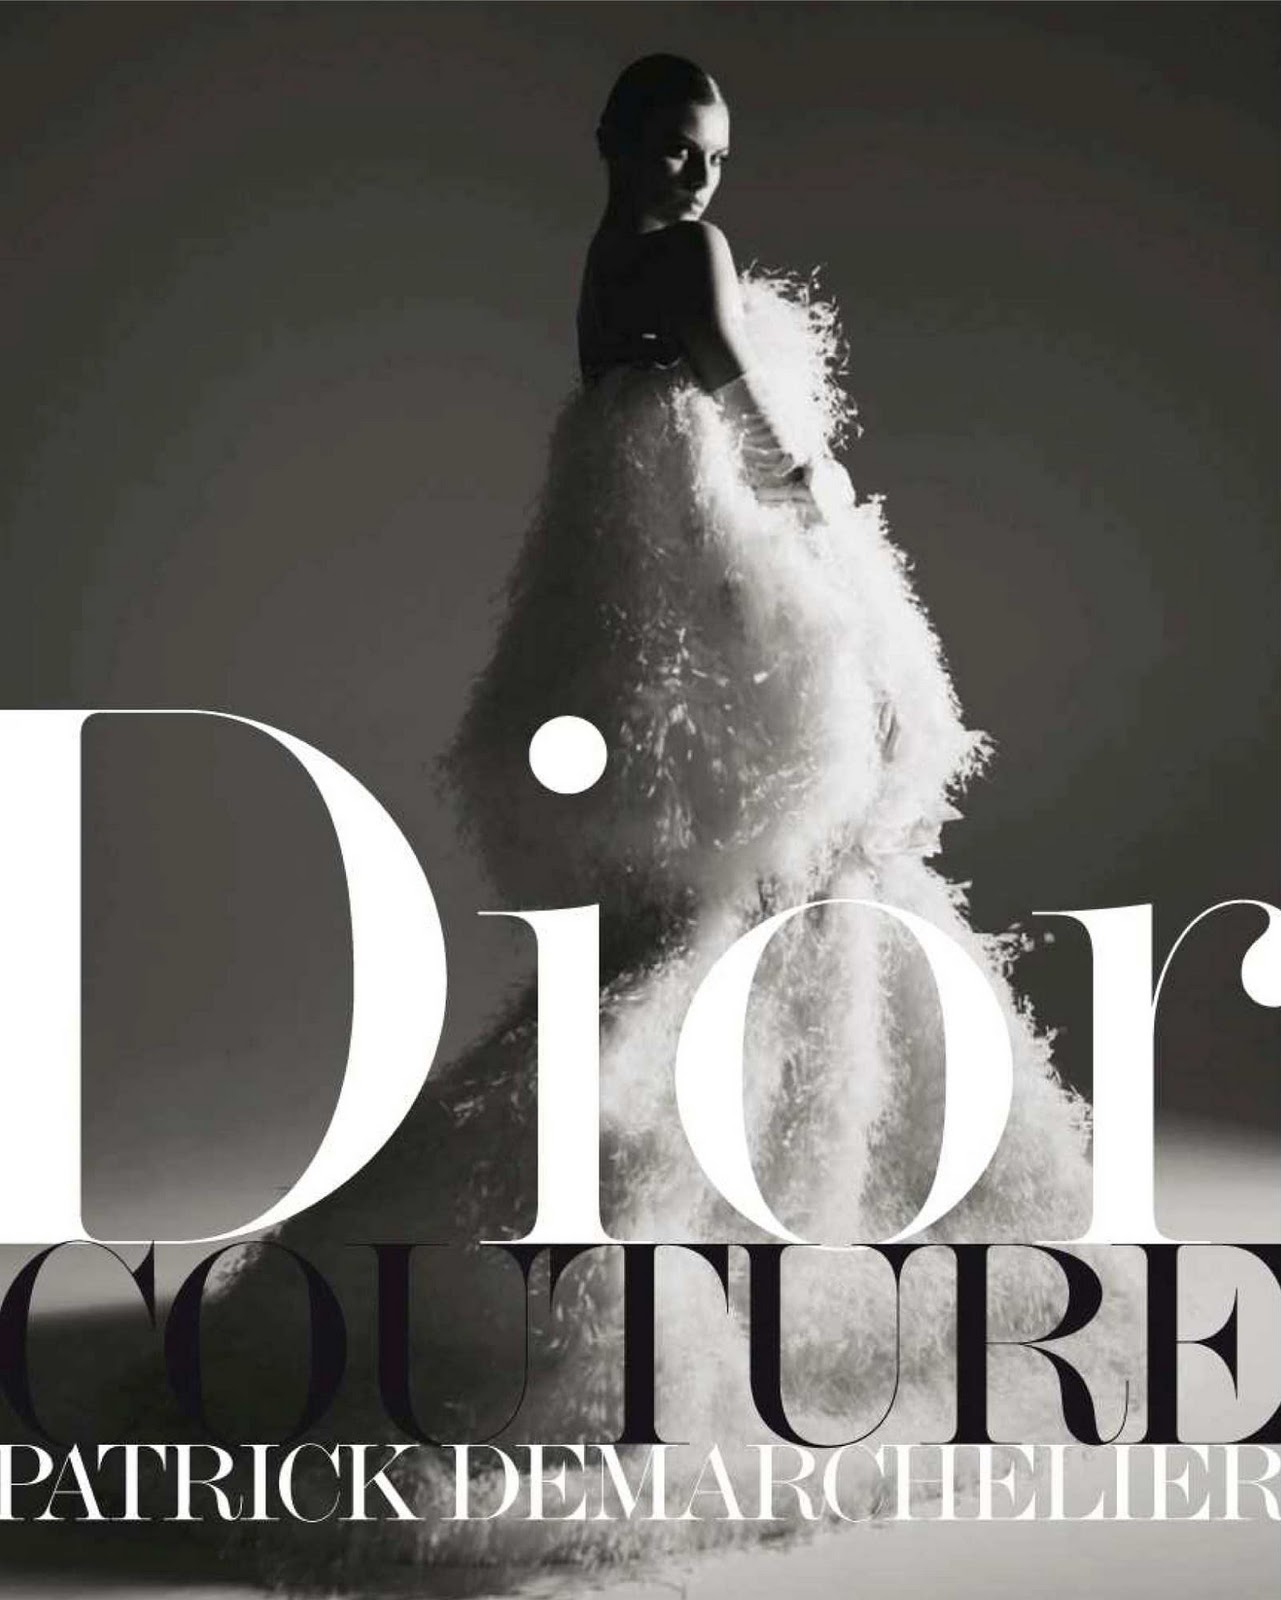 Christian Dior Art Decoratif